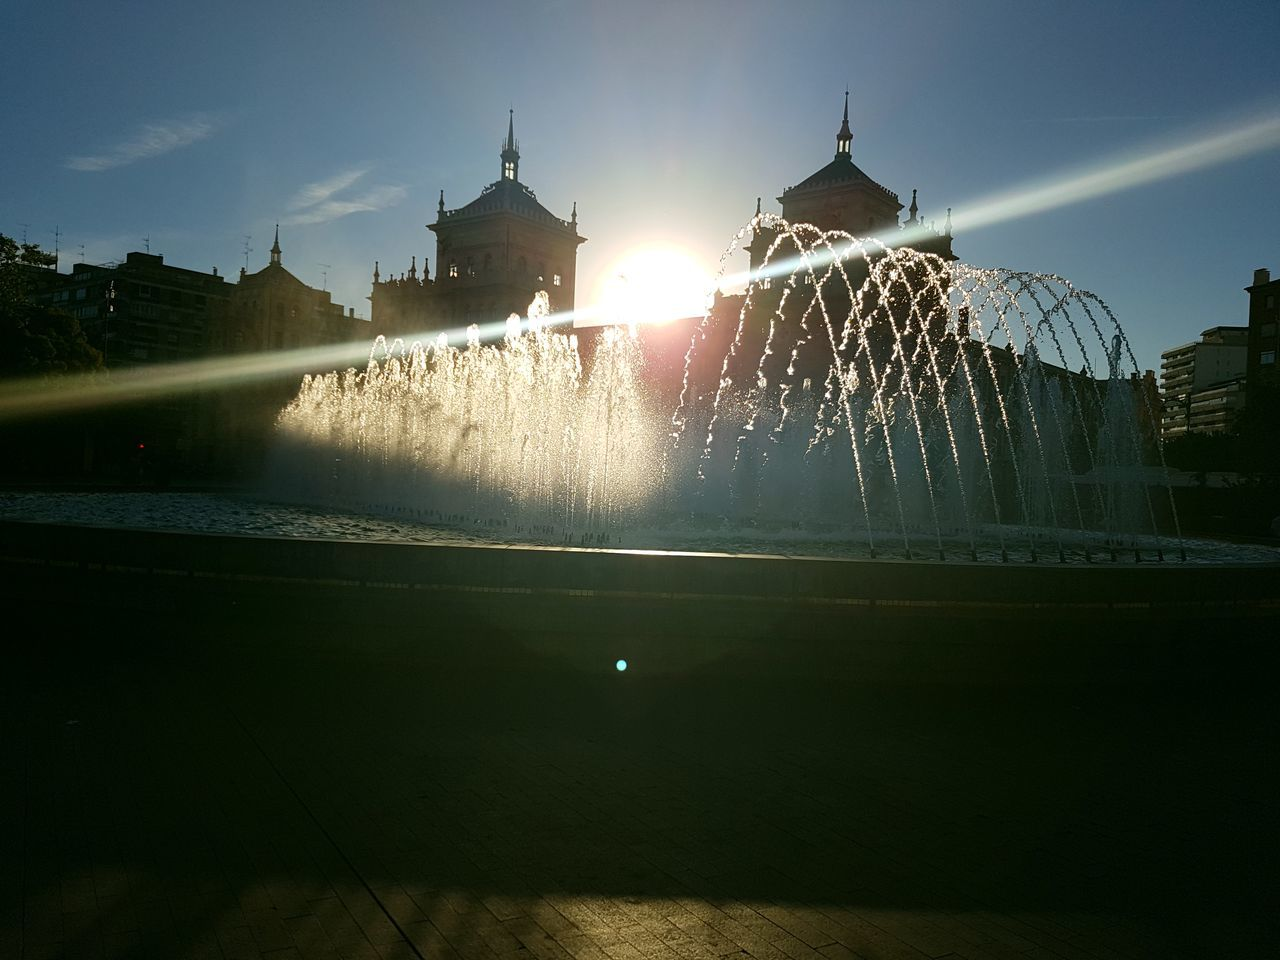 Fuente❤Agua Fountain Motion Illuminated Water Architecture Building Exterior Spraying Lens Flare Sun Sky Glowing Sunbeam Nature Outdoors Sparks Lit Tranquil Scene Scenics No People Shining